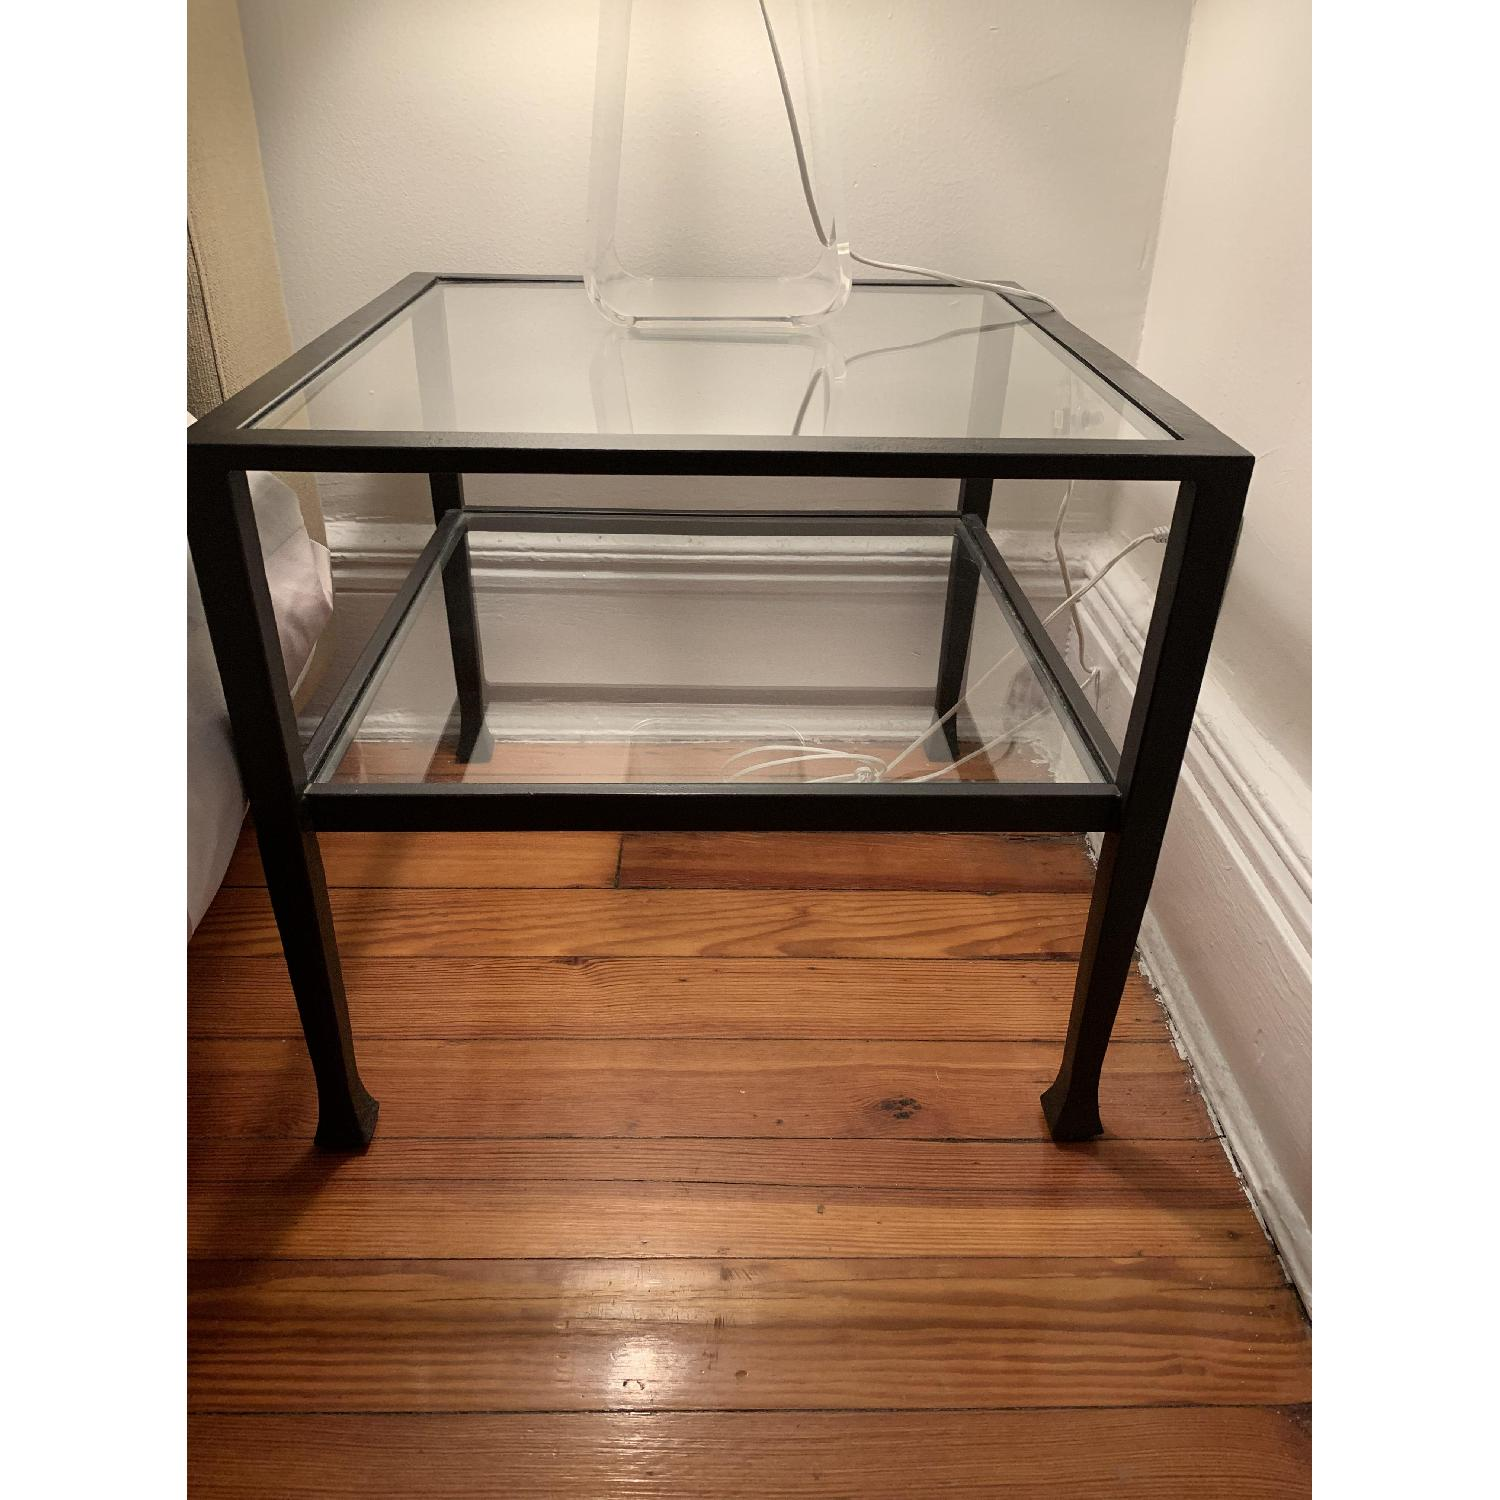 Iron Framed Pottery Barn Side Tables with Glass Top & Shelf - image-5